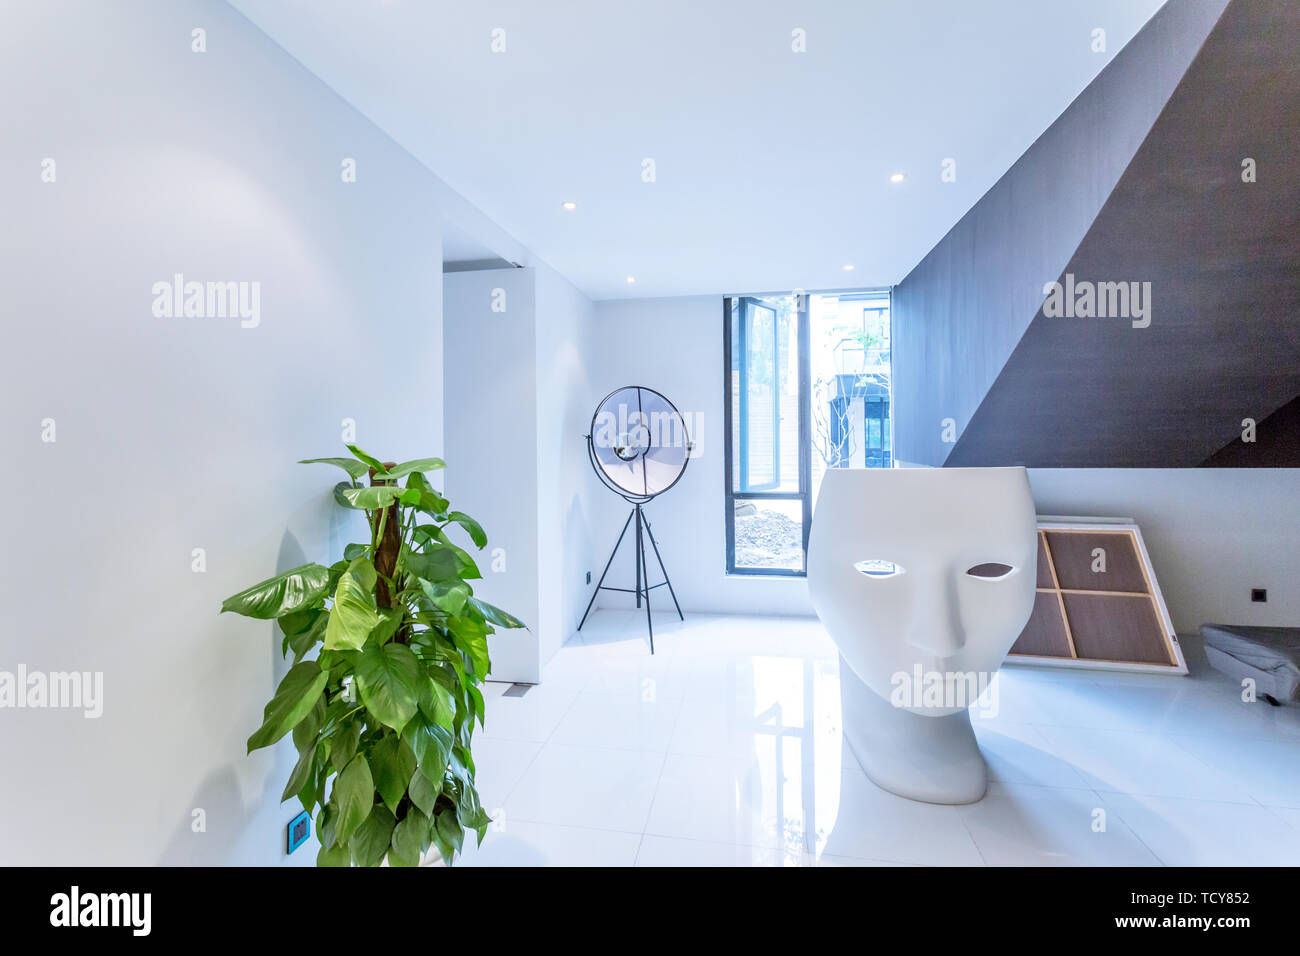 corner of the artistical room - Stock Image